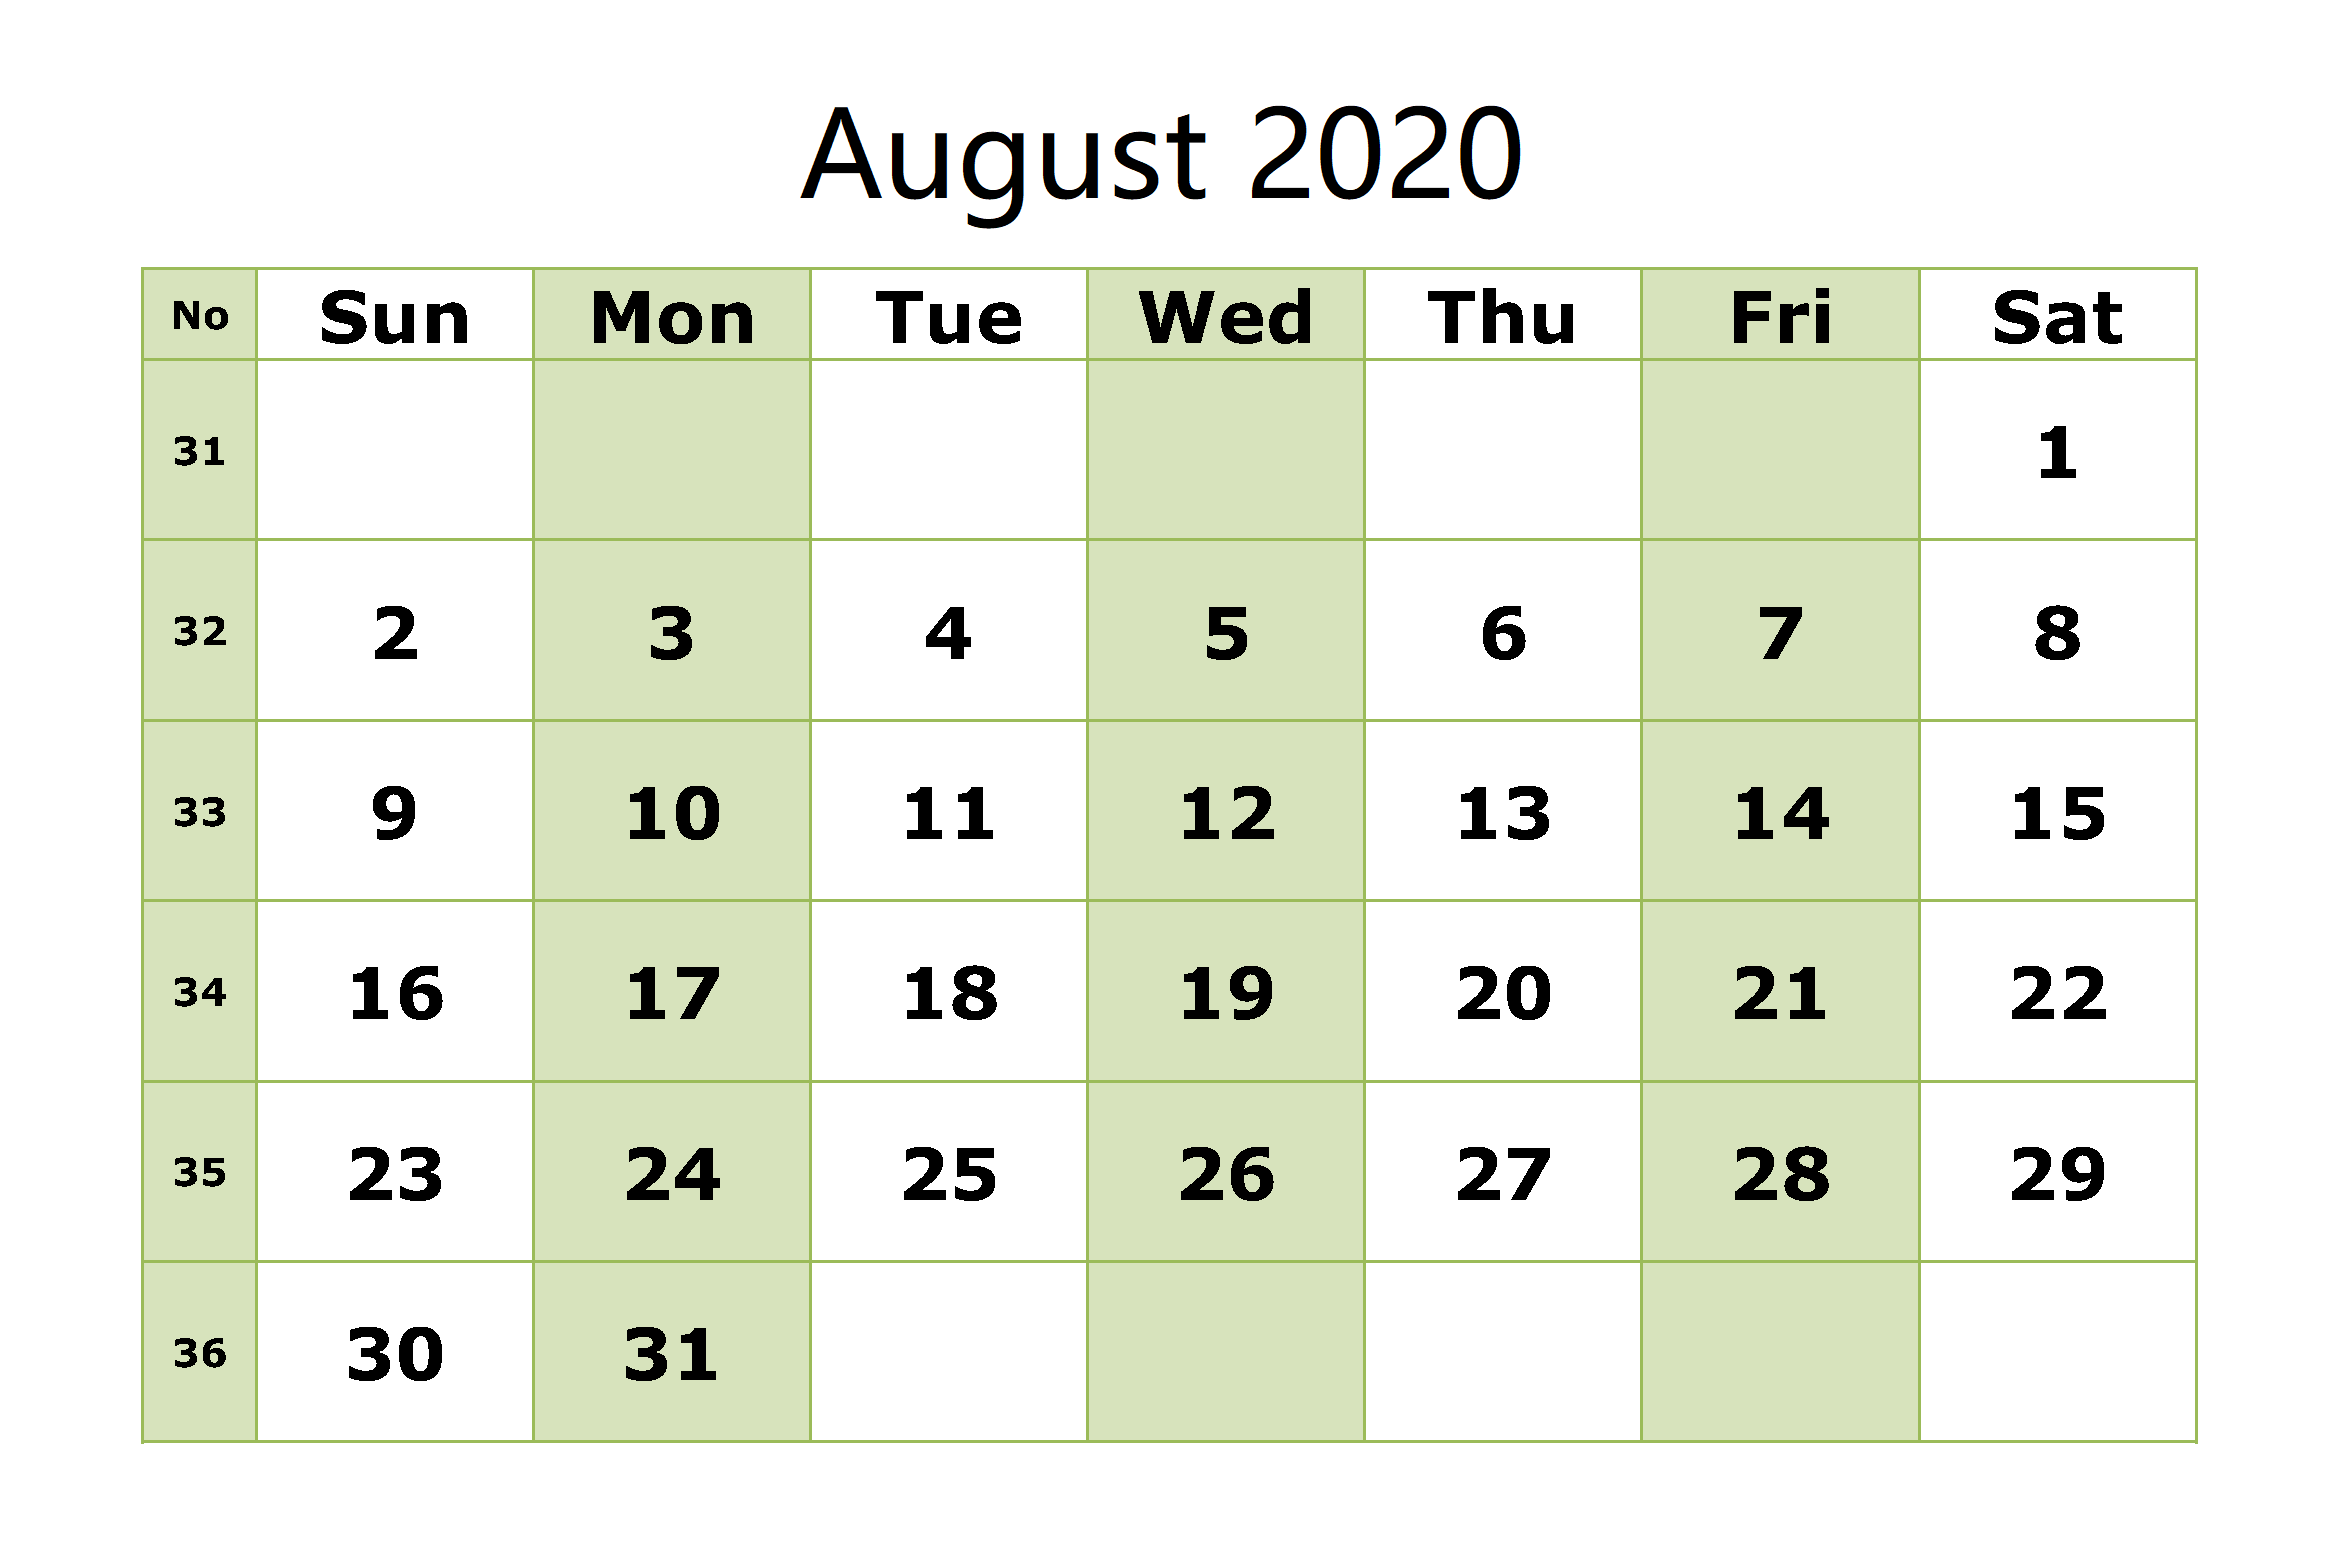 August 2020 Calendar With Holidays PDF